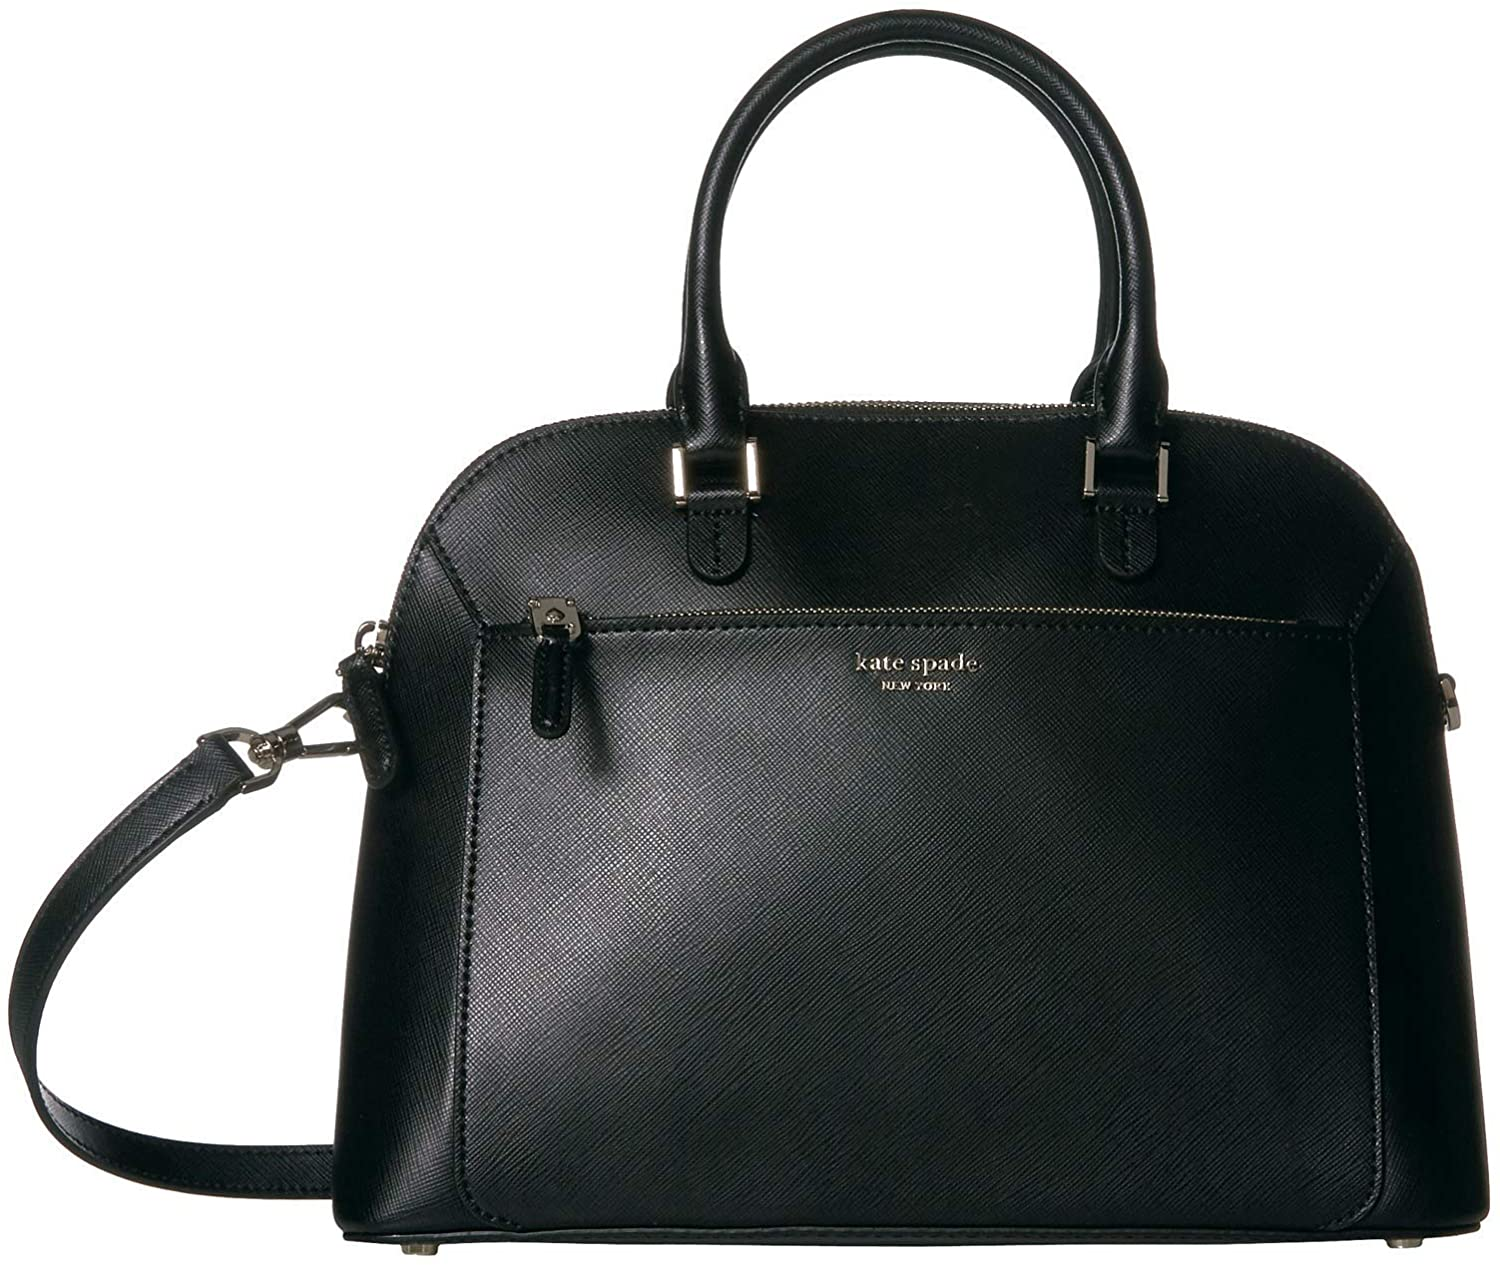 Kate Spade New York Louise Medium Dome Satchel Black